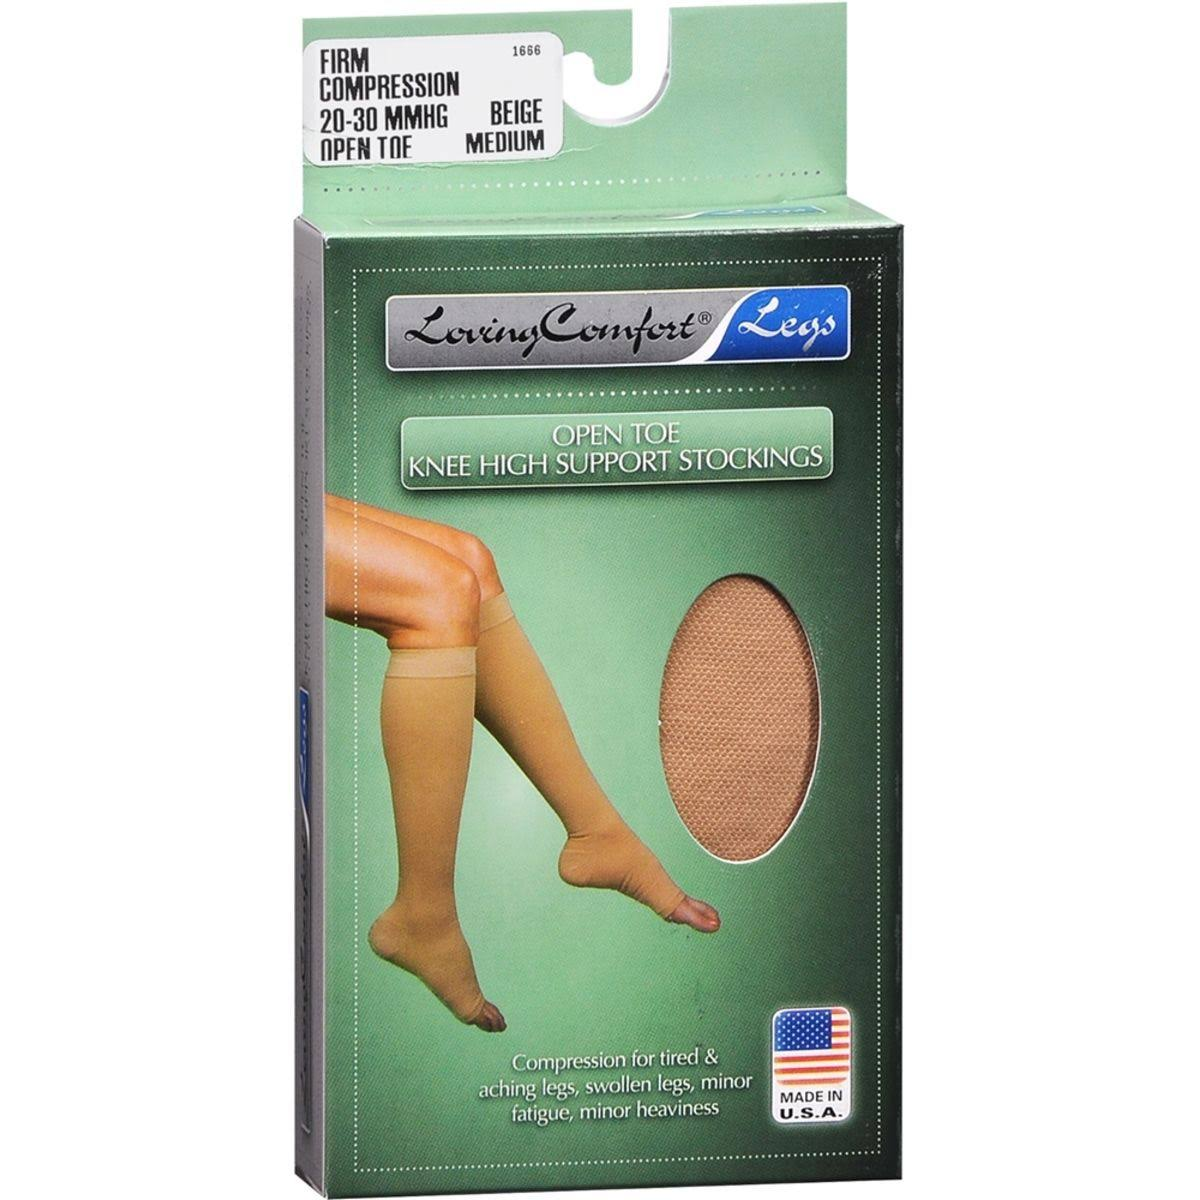 Loving Comfort Knee High Compression Hose - Beige, Medium